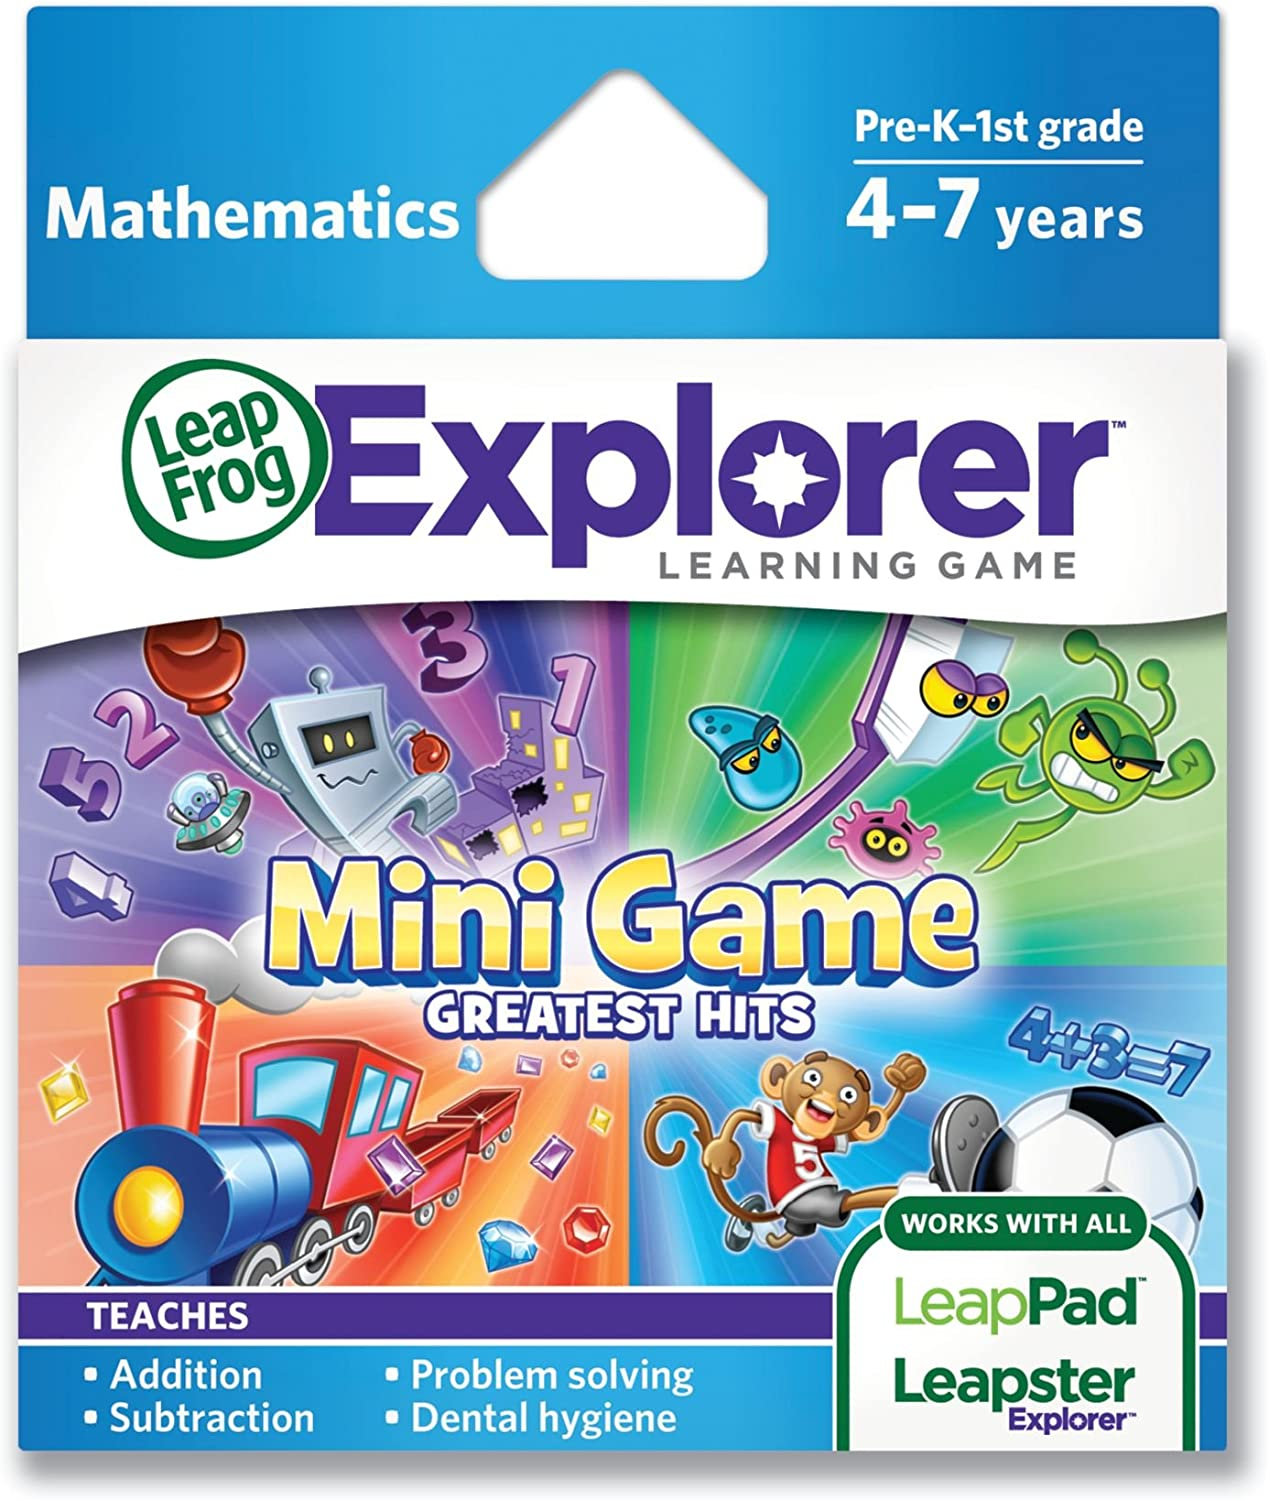 discount LeapFrog Mini sale Game Greatest Hits works Learning LeapP with